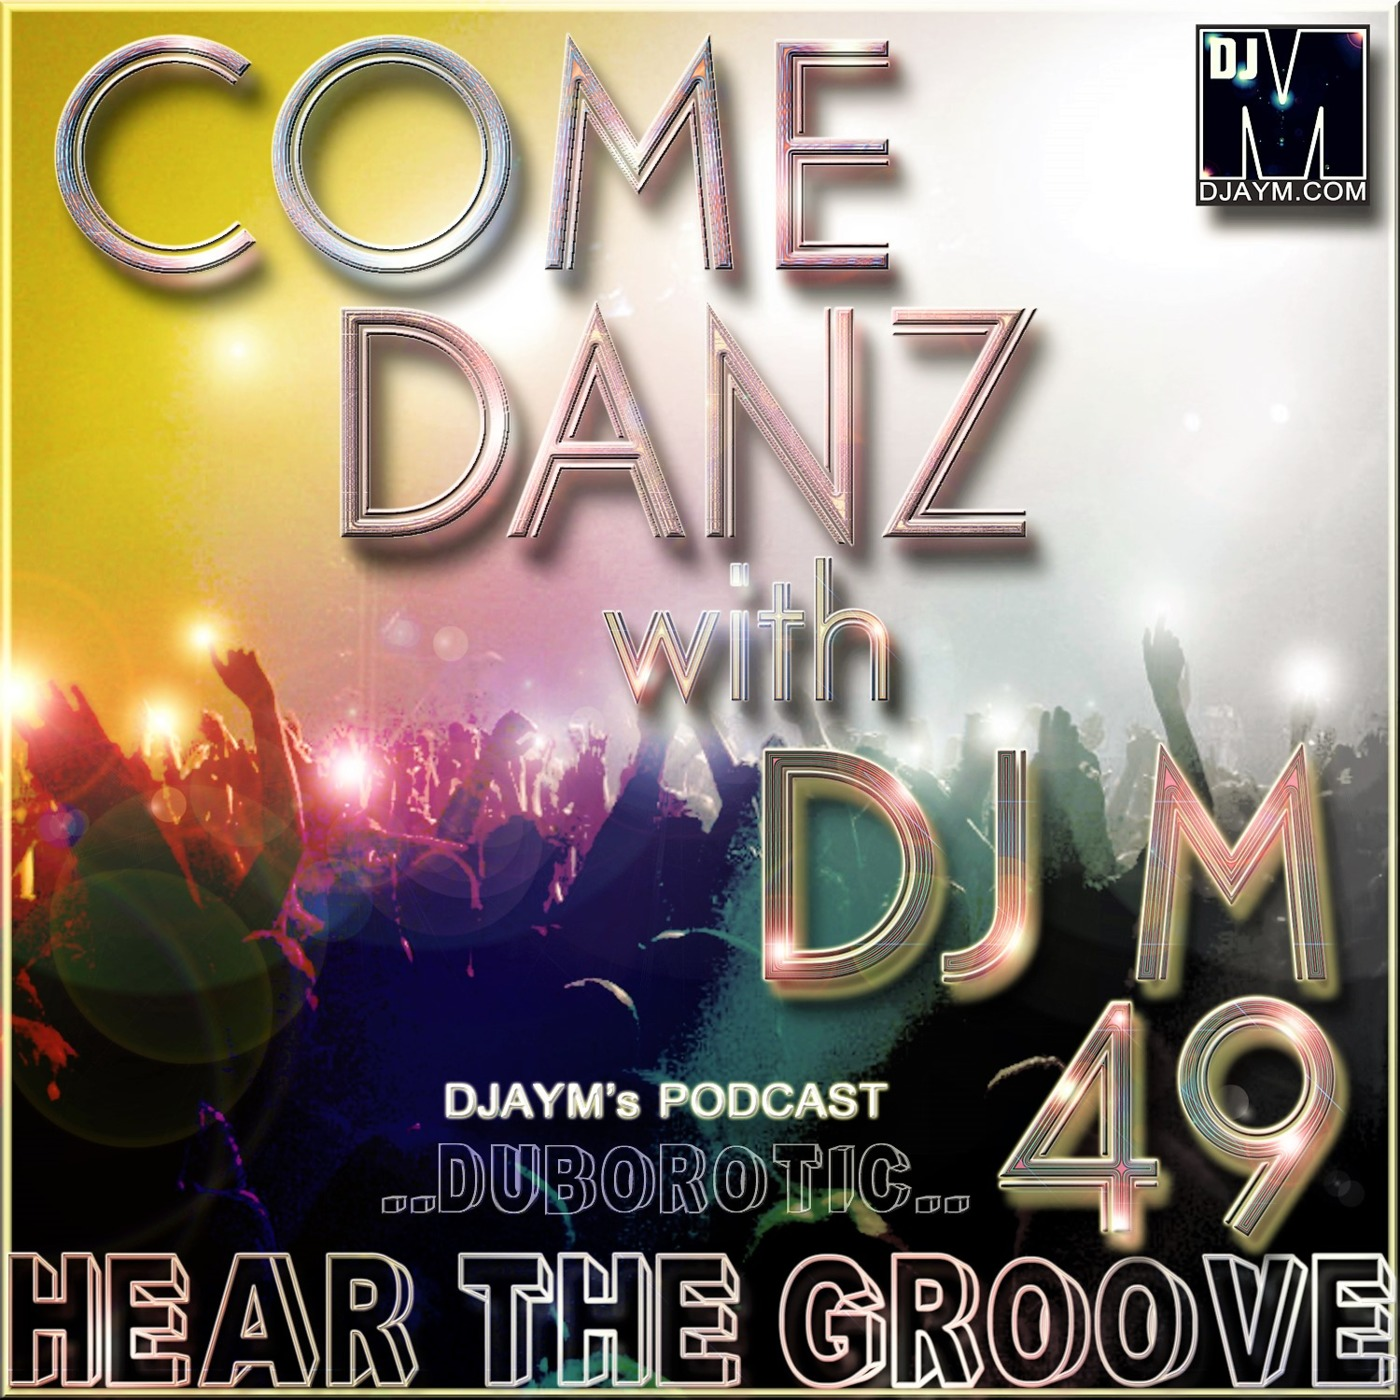 COME DANZ 49 (Hear The Groove) DJAYM's podcast